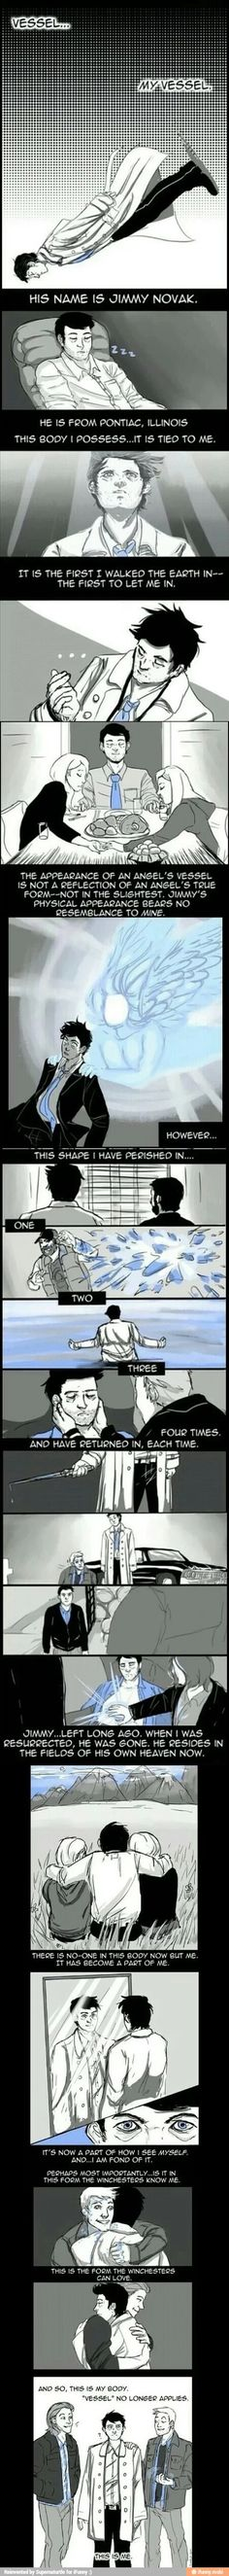 Awwww. I always feel sad knowing that that isn't actually how Cas looks, now I feel better. =)